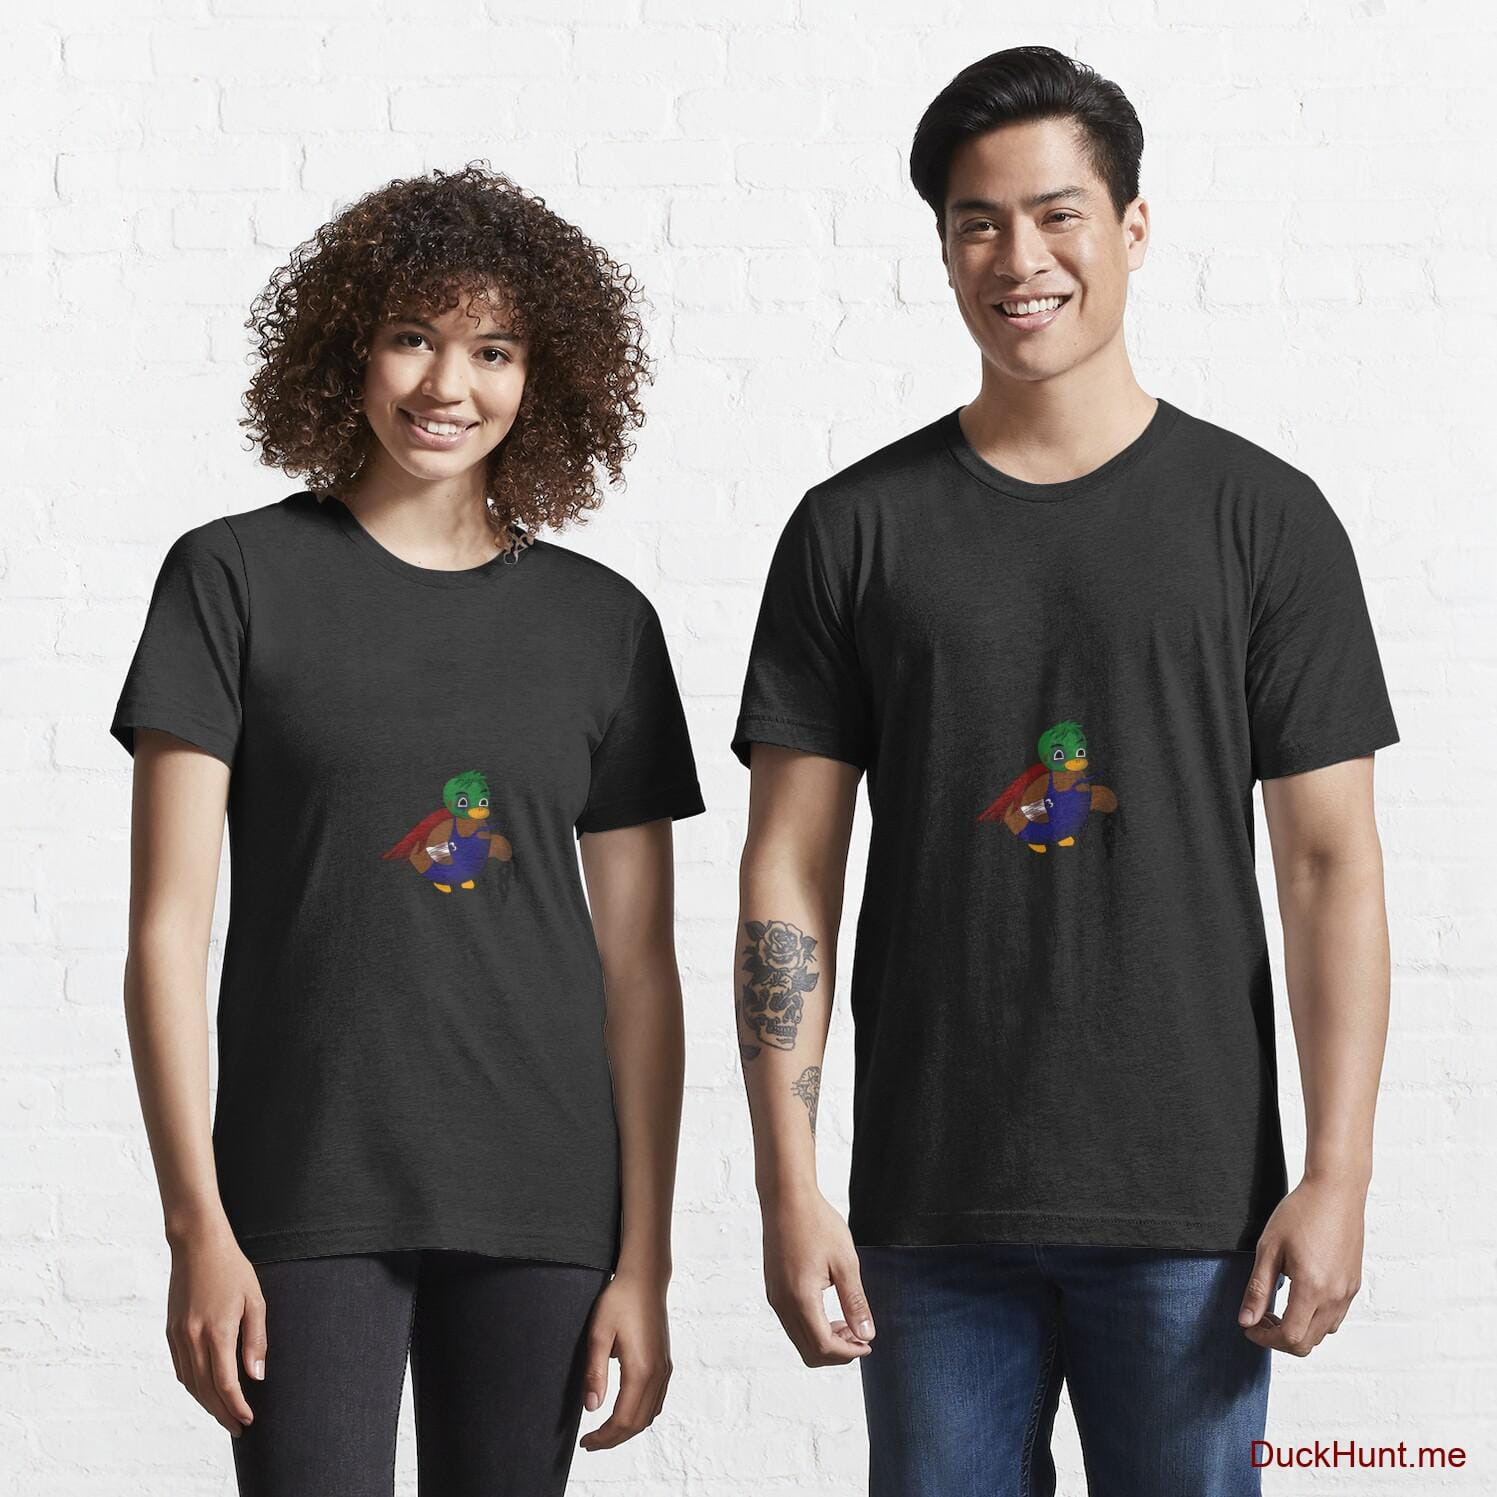 Dead DuckHunt Boss (smokeless) Black Essential T-Shirt (Front printed)